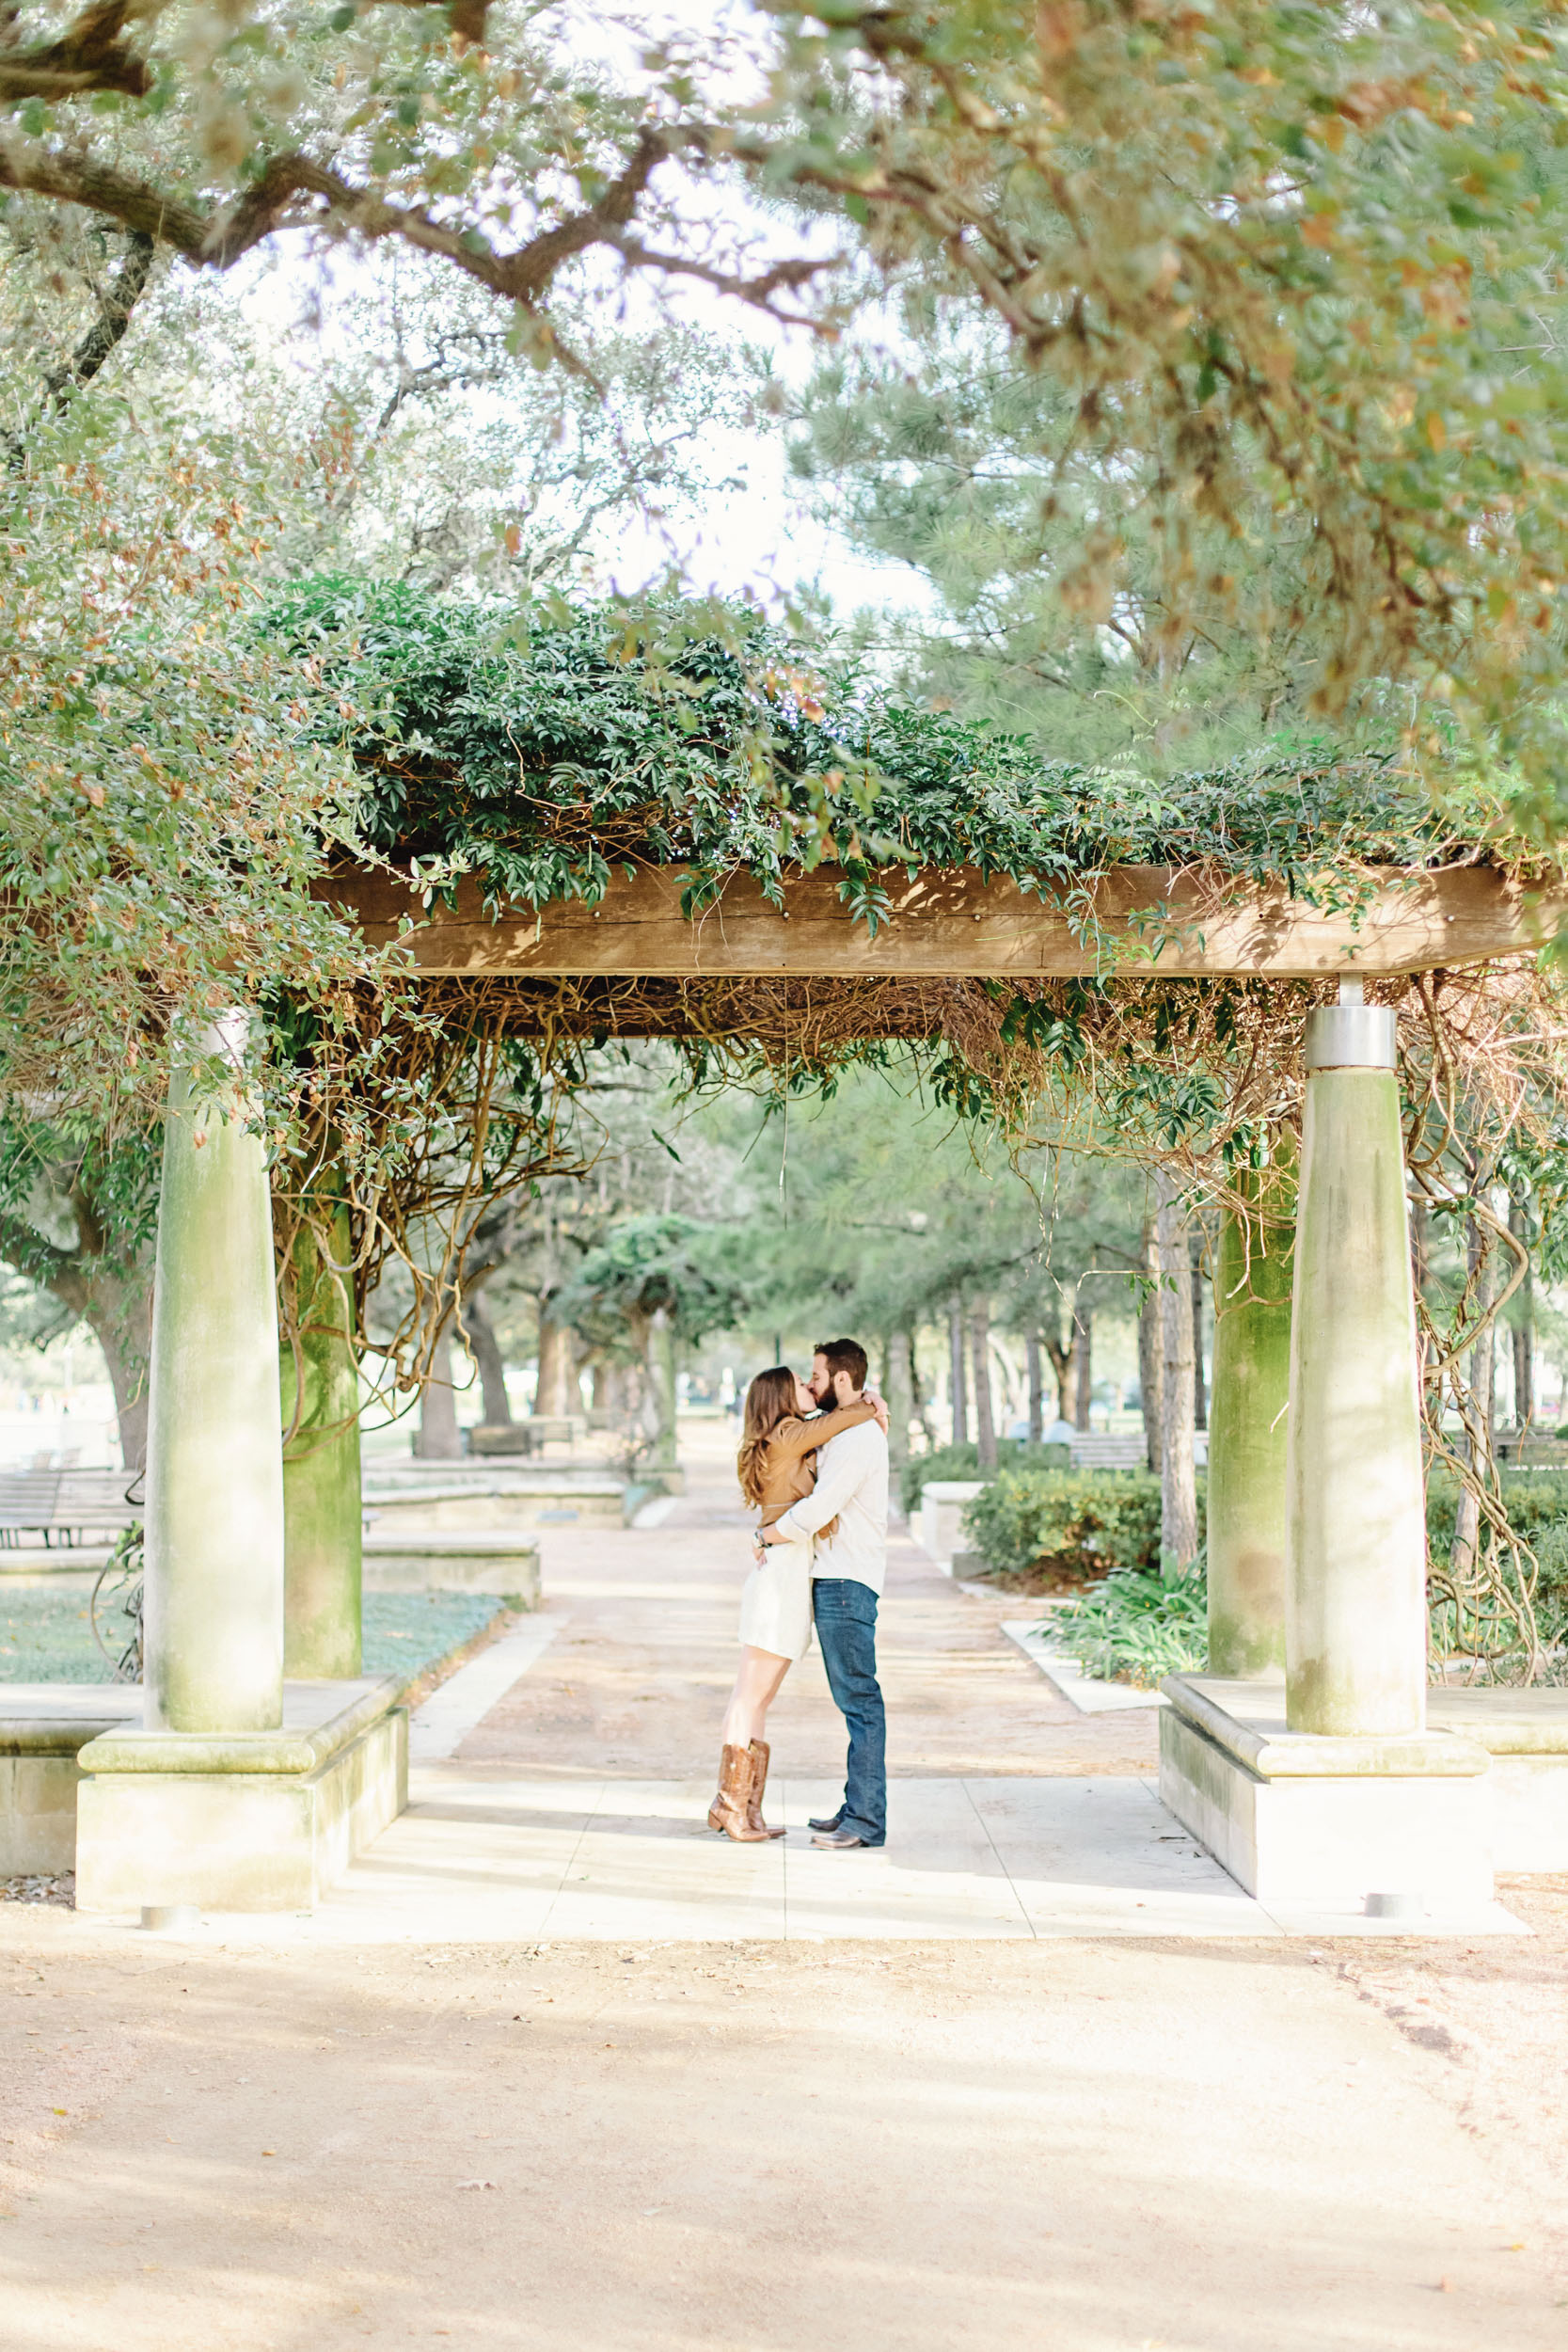 Cassie Schott Photography_Houston and Chicago Portrait Photographer_Engagement Sessions and Anniversary Sessions_33.jpg